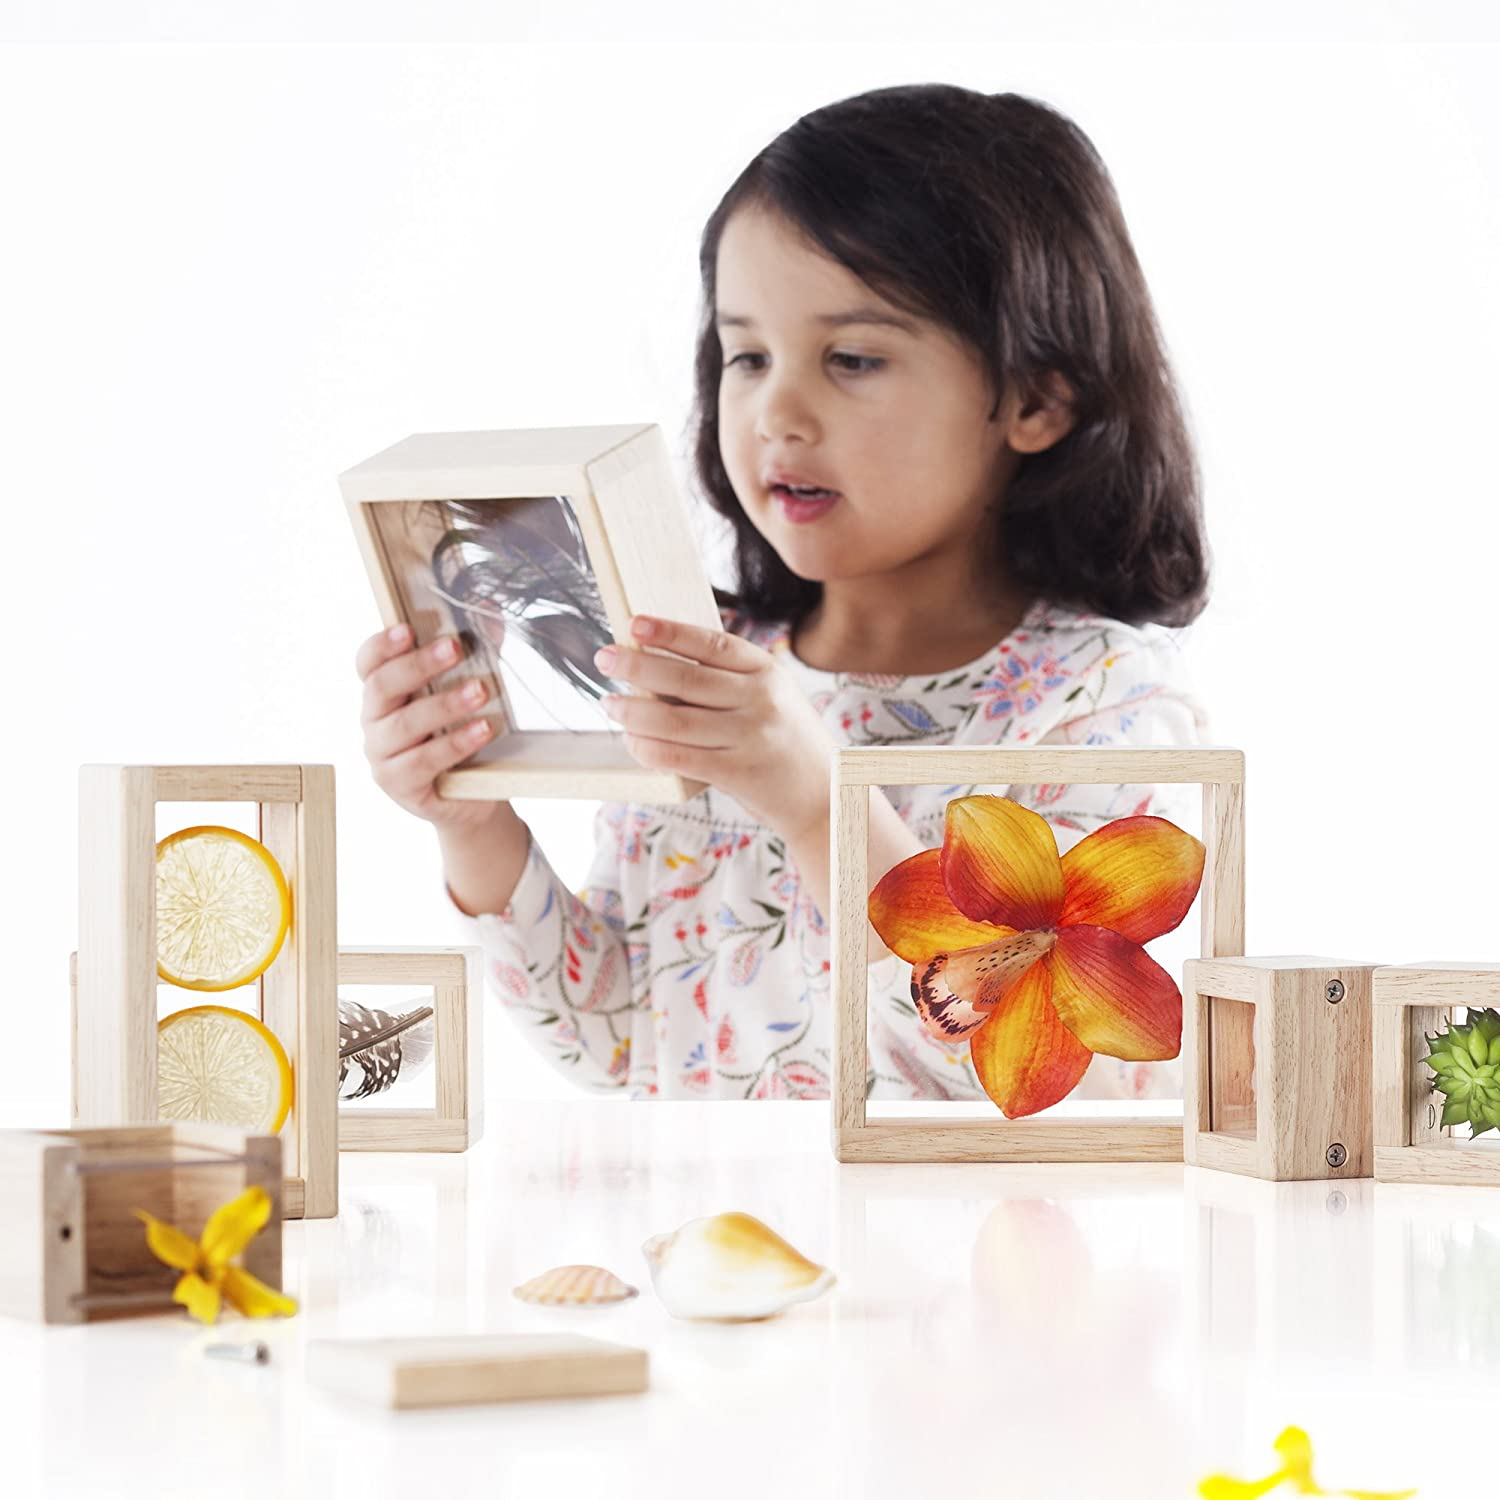 /Educational Toy for Kids Smooth Wooden Observation Stacking Blocks with Transparent Windows Guidecraft Treasure Blocks Clear